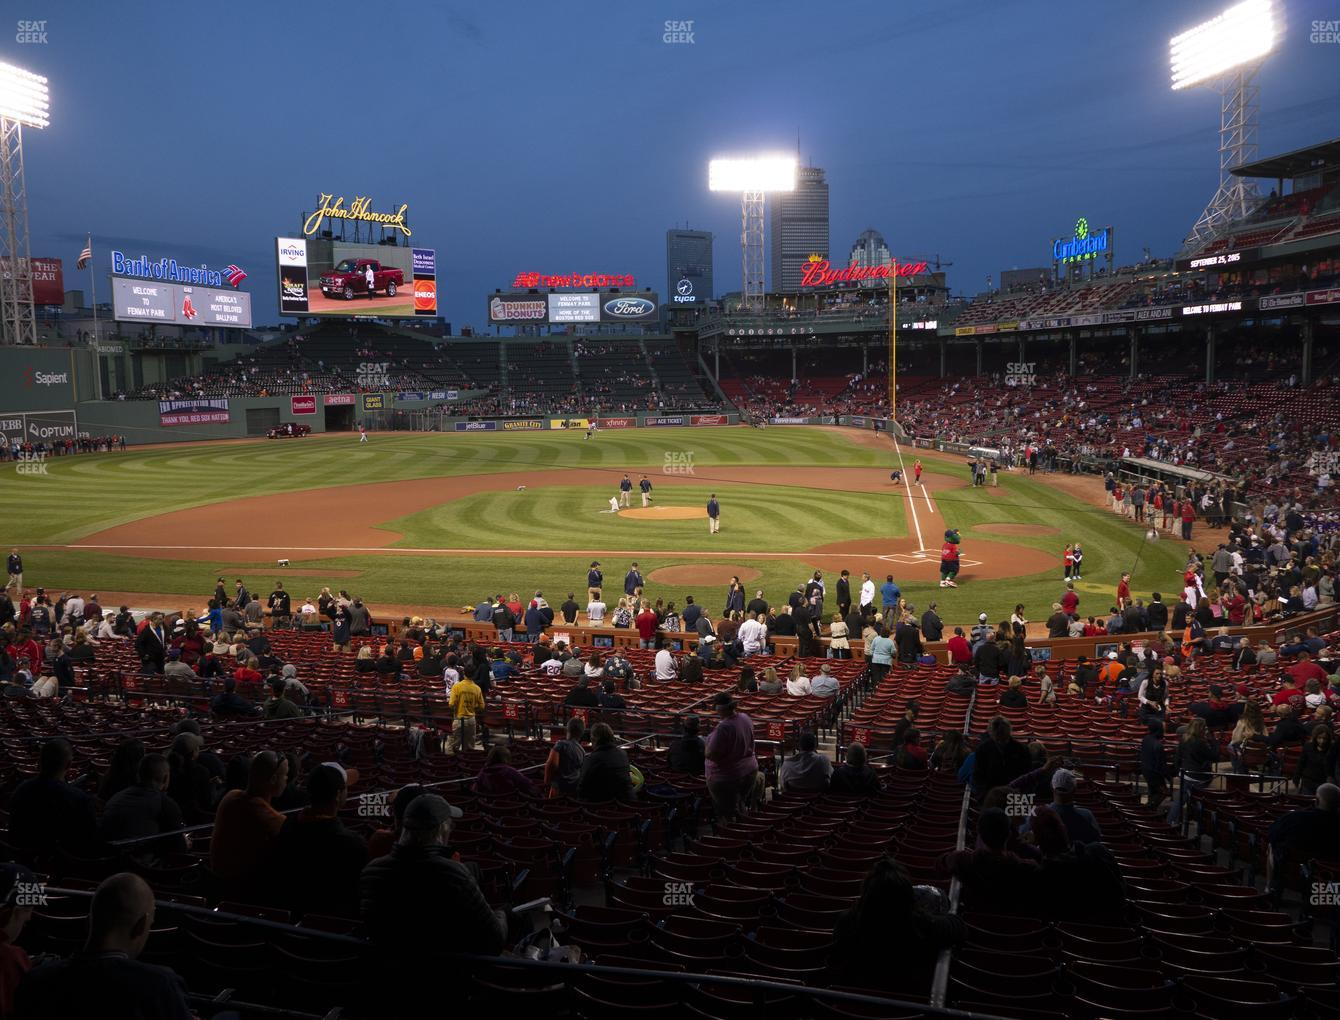 Boston Red Sox at Fenway Park Infield Grandstand 24 View